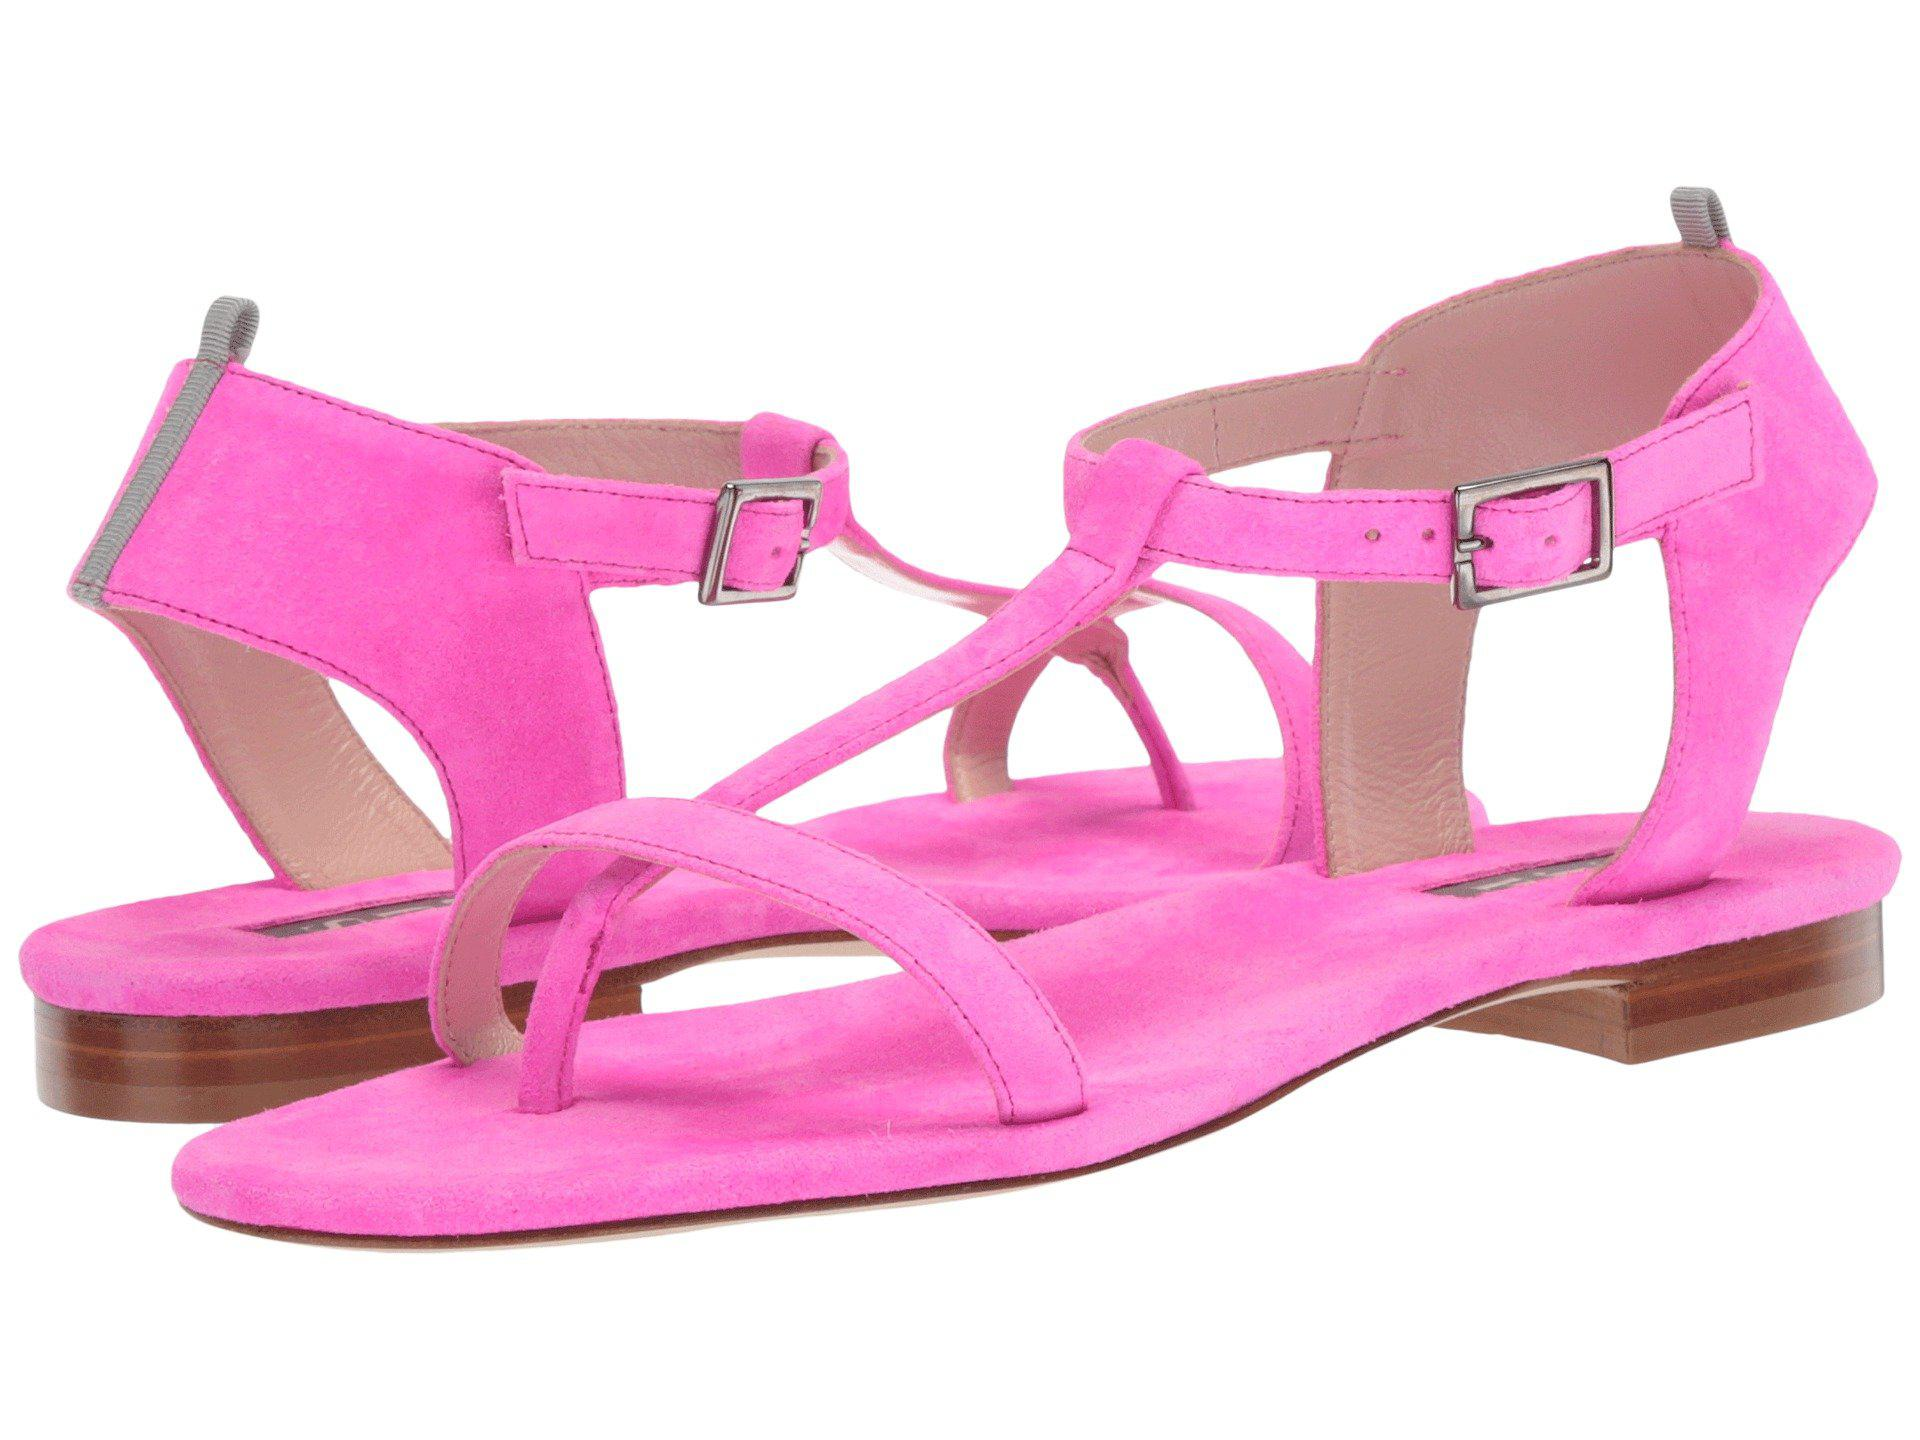 590e8c41b Lyst - Sjp By Sarah Jessica Parker Veronika in Pink